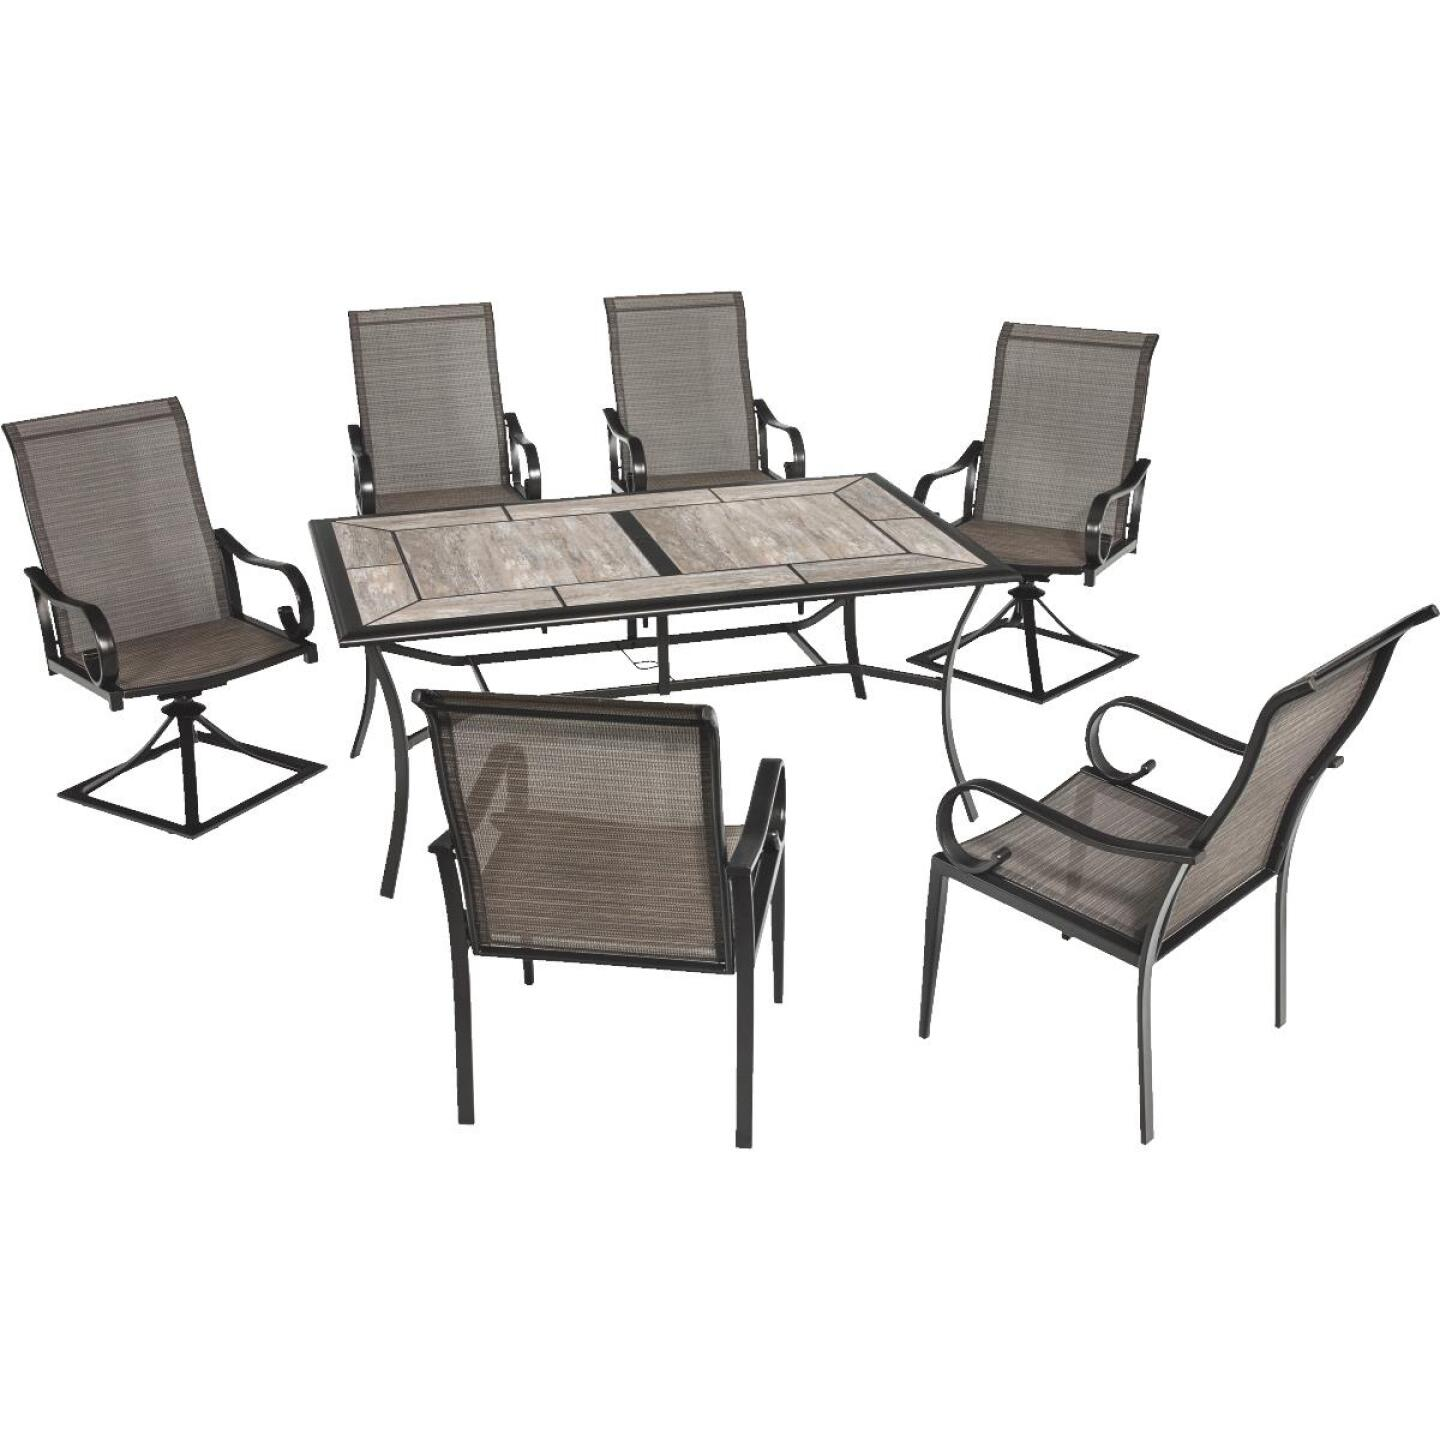 Outdoor Expressions Berkshire 7-Piece Dining Set Image 32